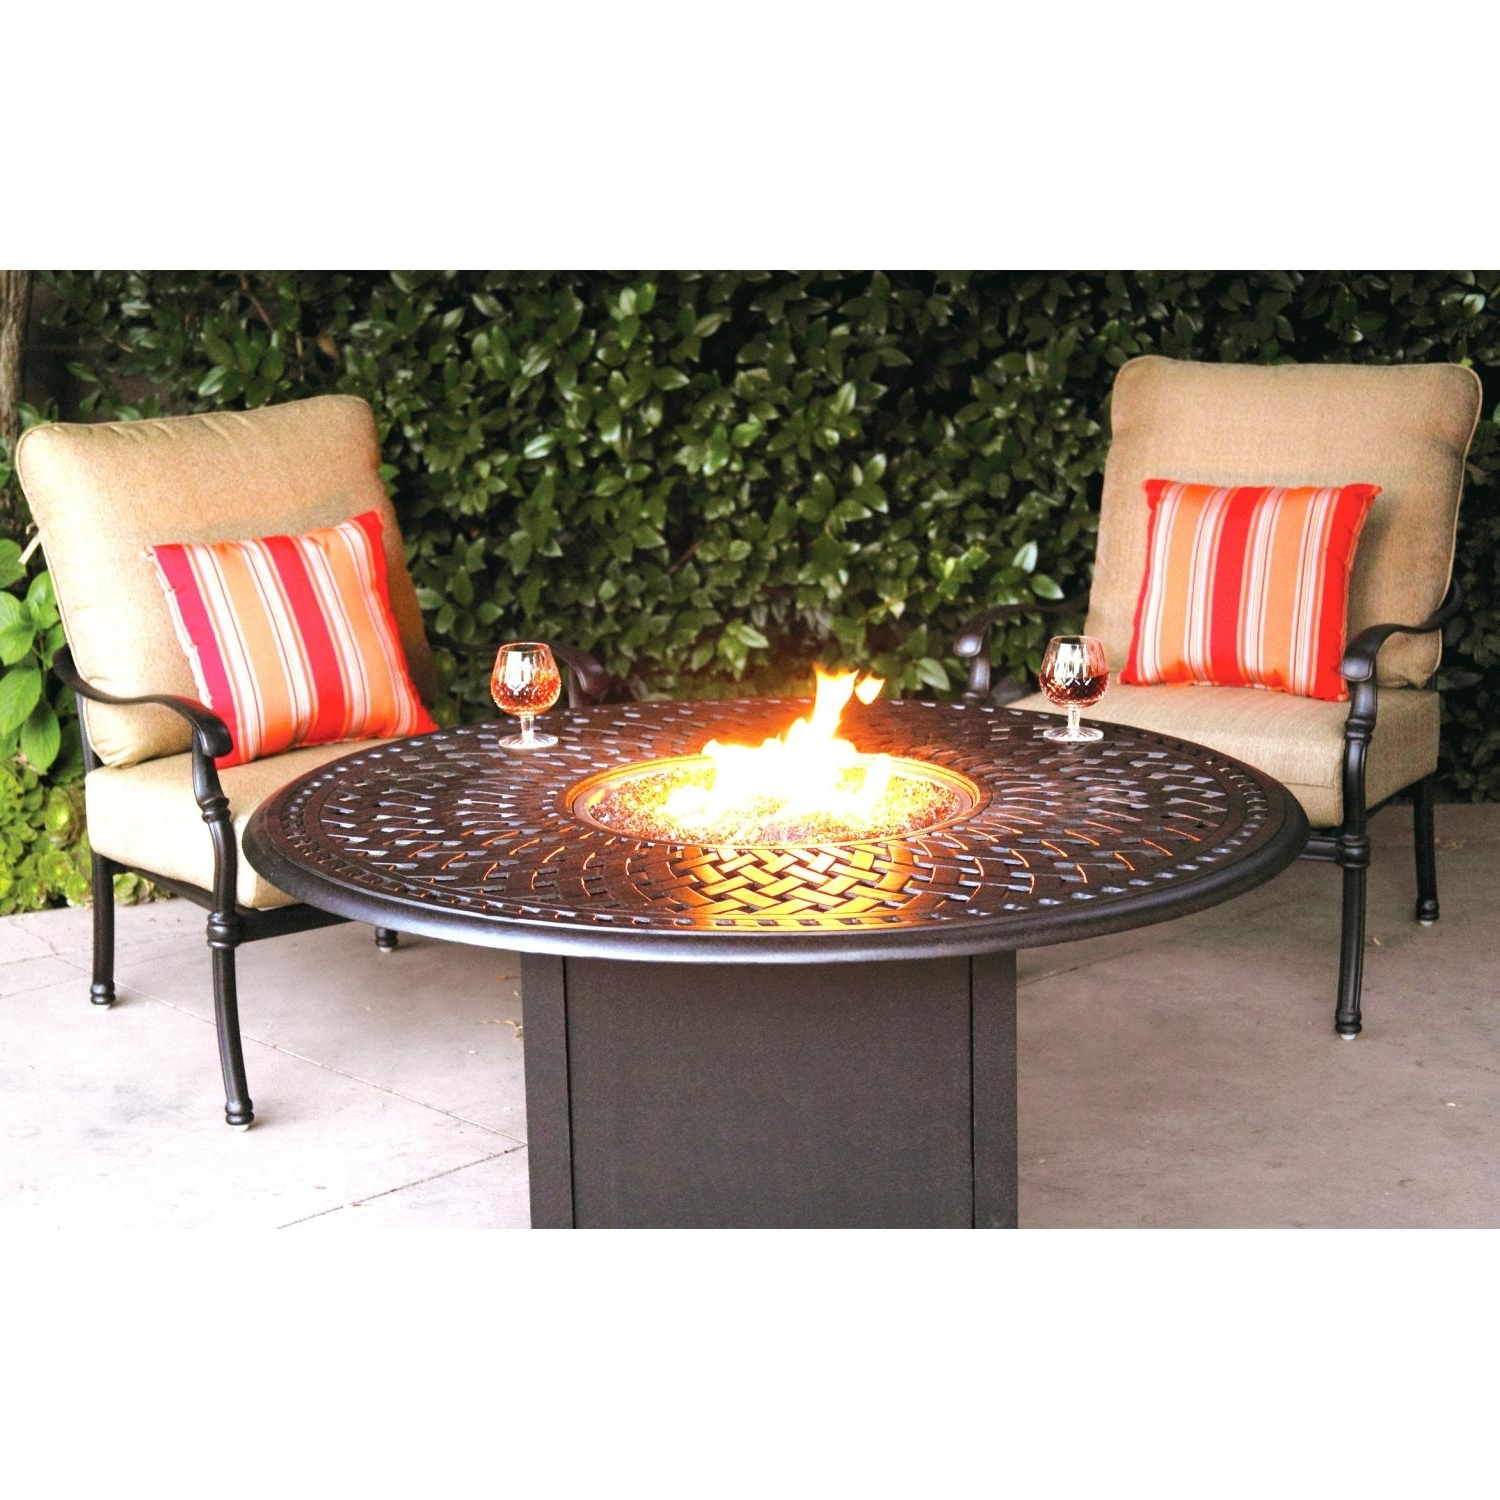 Darlee Florence 3 Piece Aluminum Patio Fire Pit Seating Set Intended For Fashionable Patio Furniture Conversation Sets With Fire Pit (View 5 of 20)